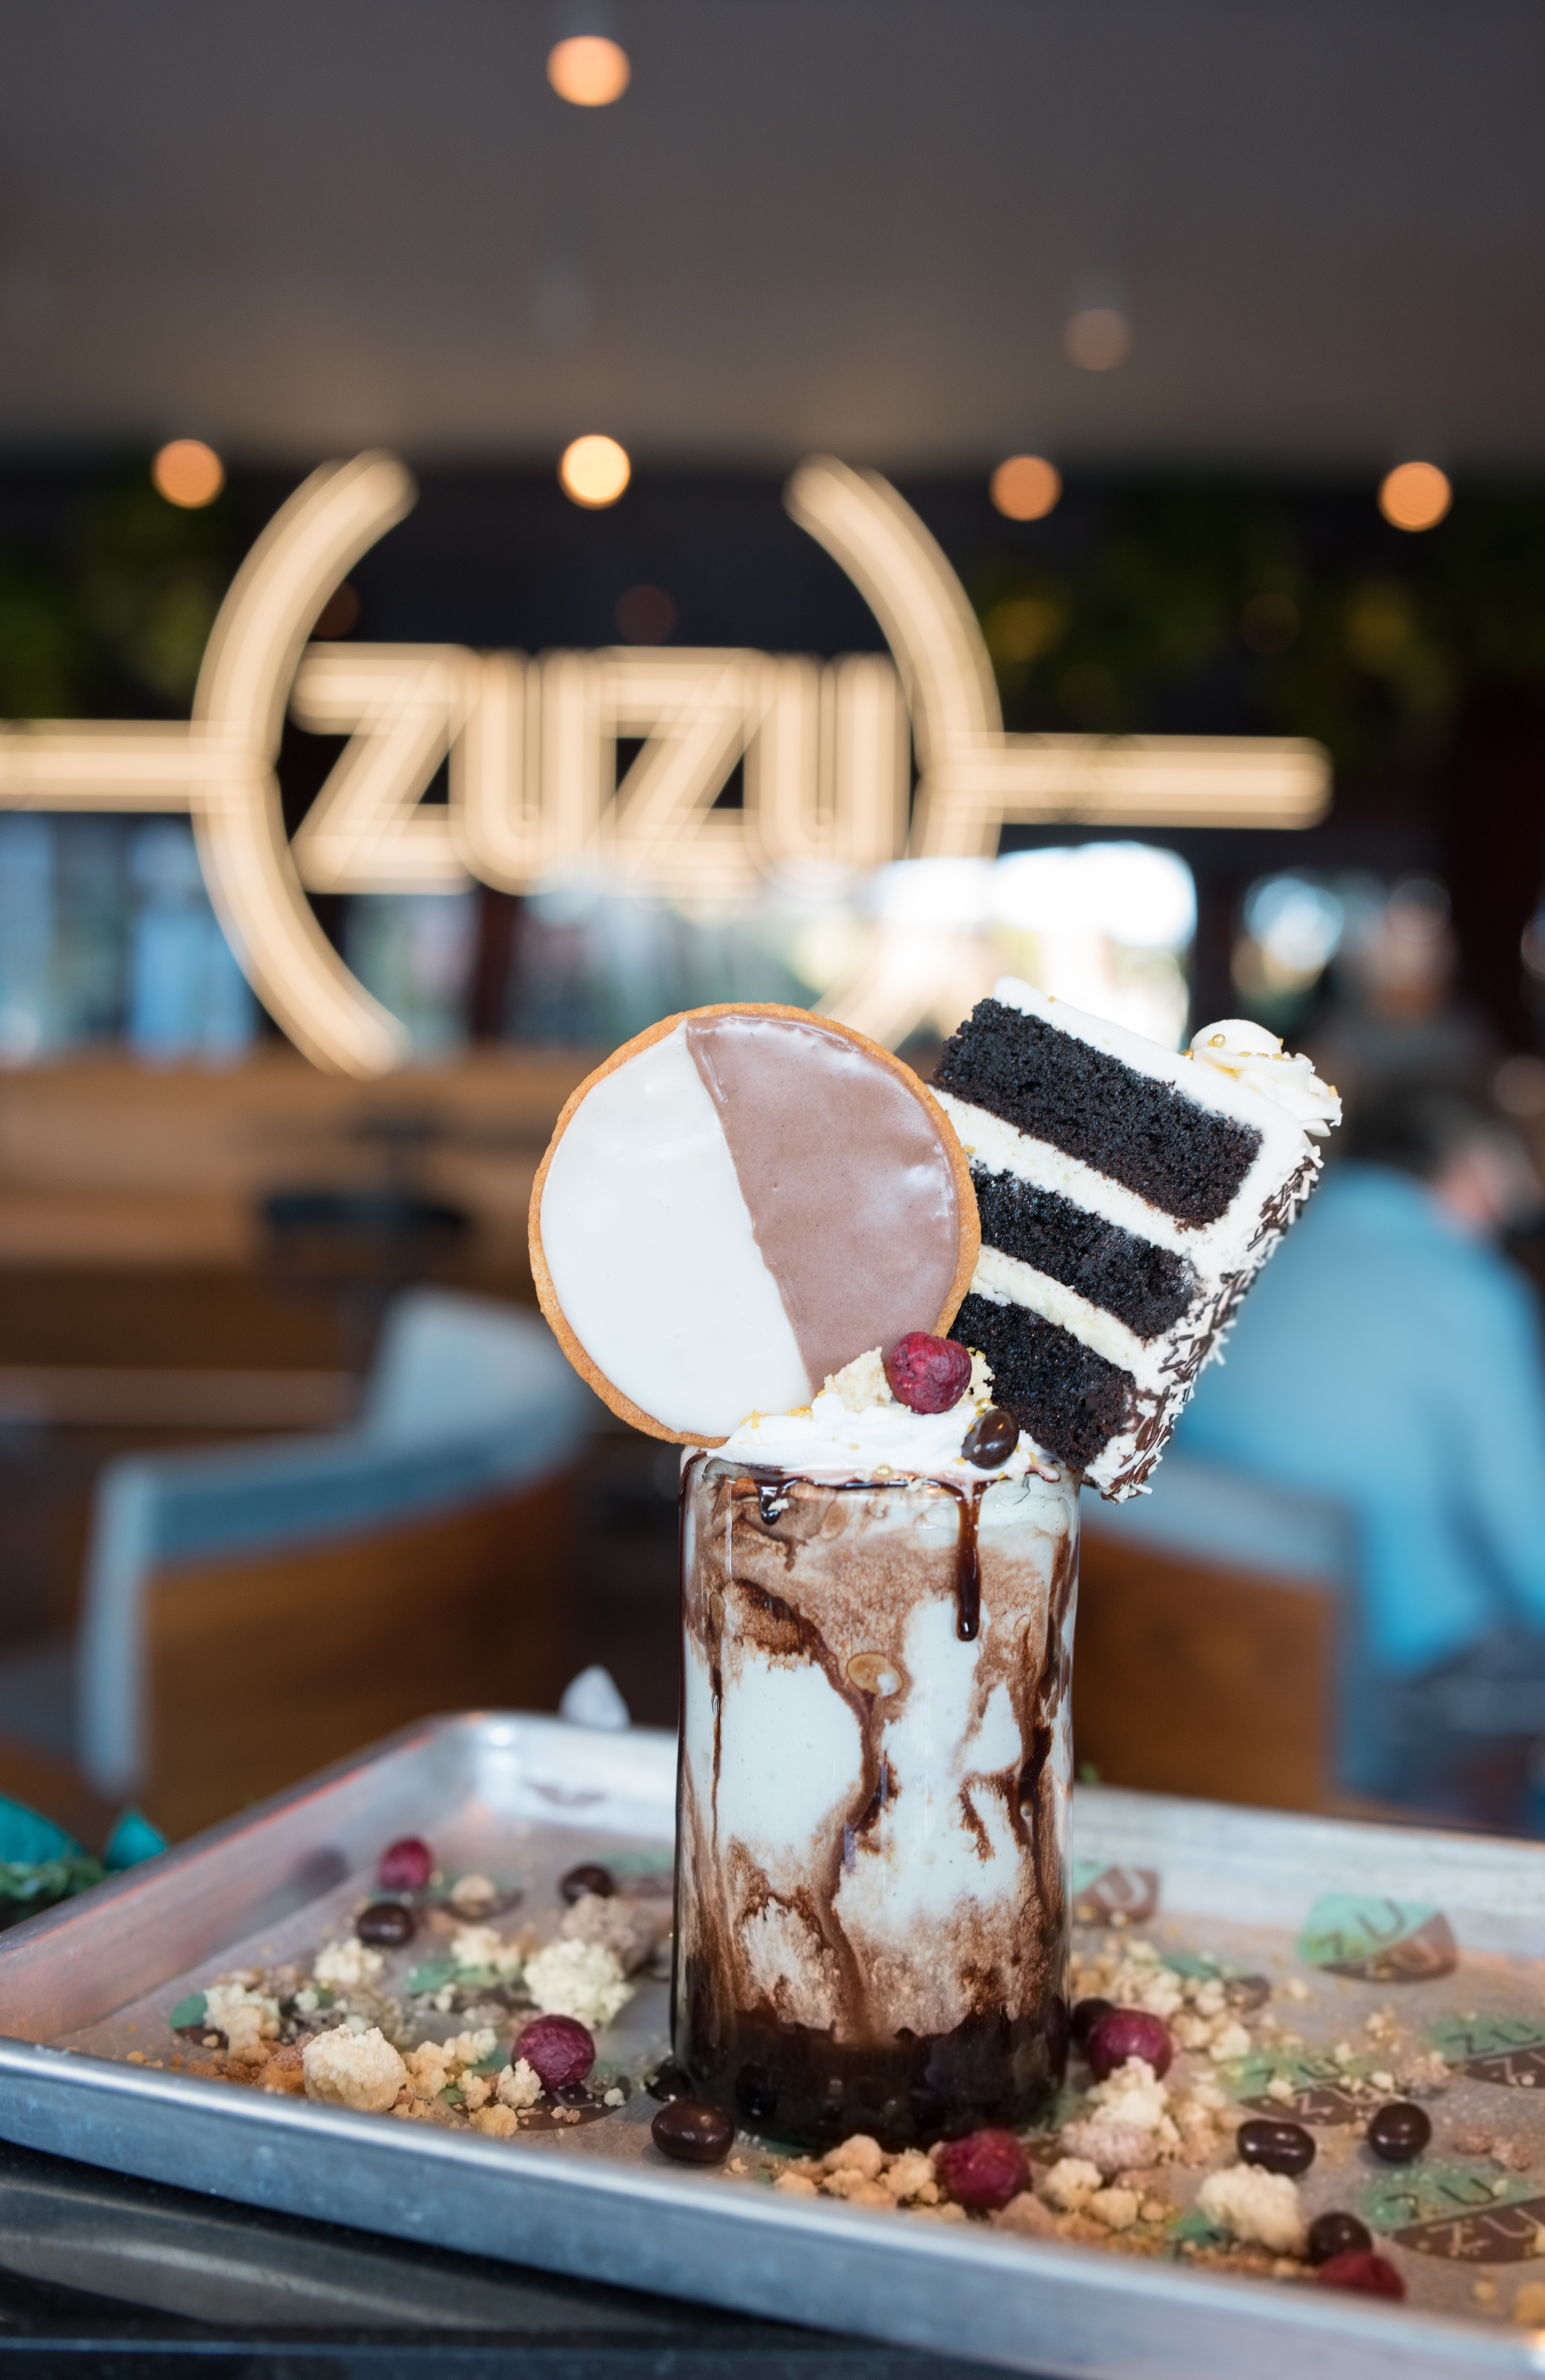 An over-the-top milkshake with a slice of chocolate cake with vanilla icing, a black and white cookie, and whipped cream with a cherry on top.